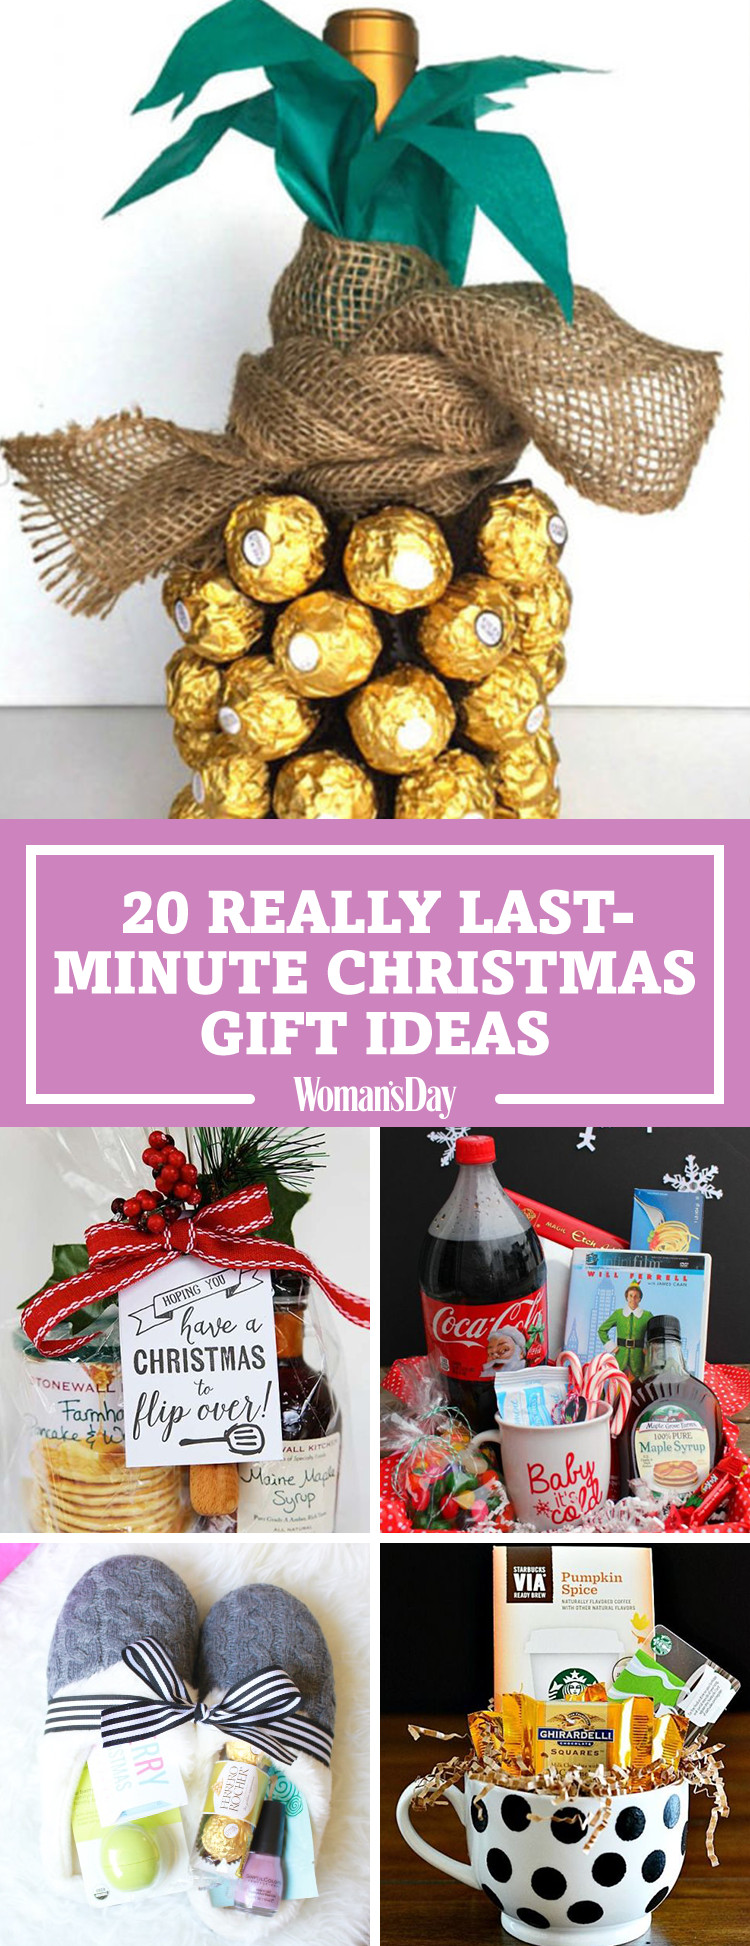 Last Minute Holiday Gift Ideas  Last Minute Christmas Gifts Retailers with Last Minute